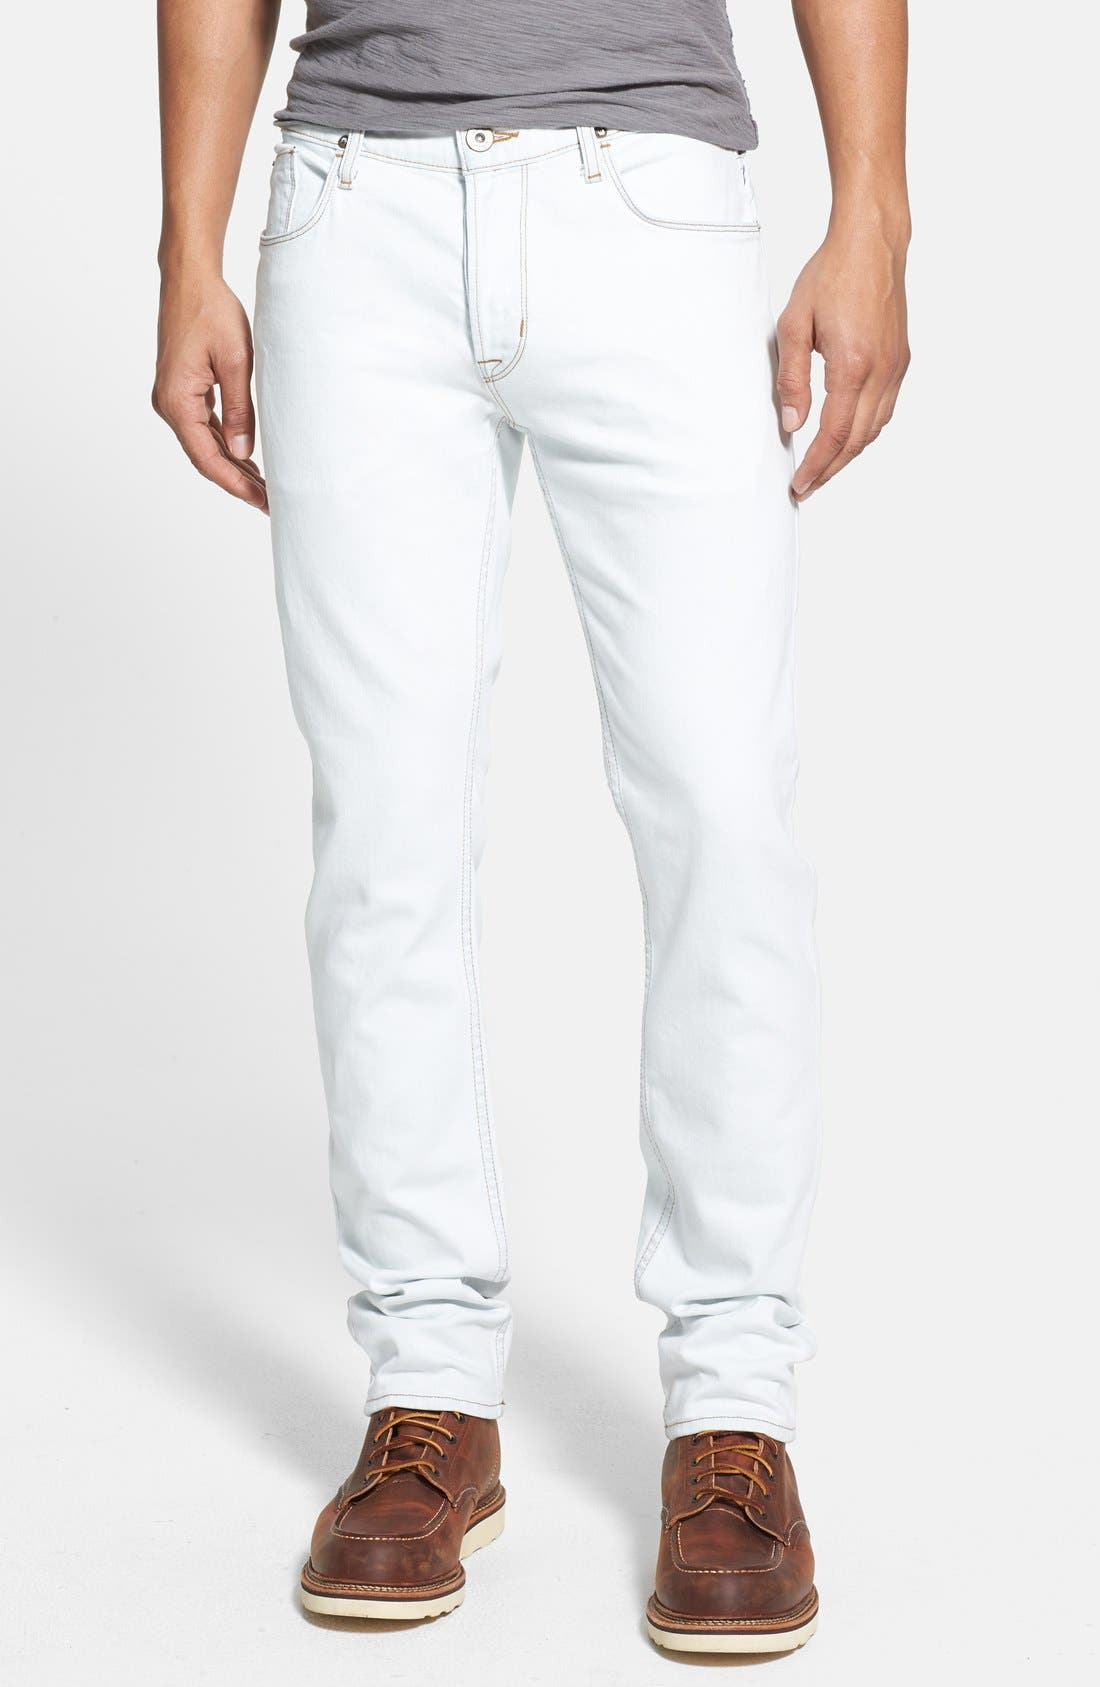 Main Image - Hudson Jeans 'Sartor' Slouchy Skinny Fit Jeans (Flashback)